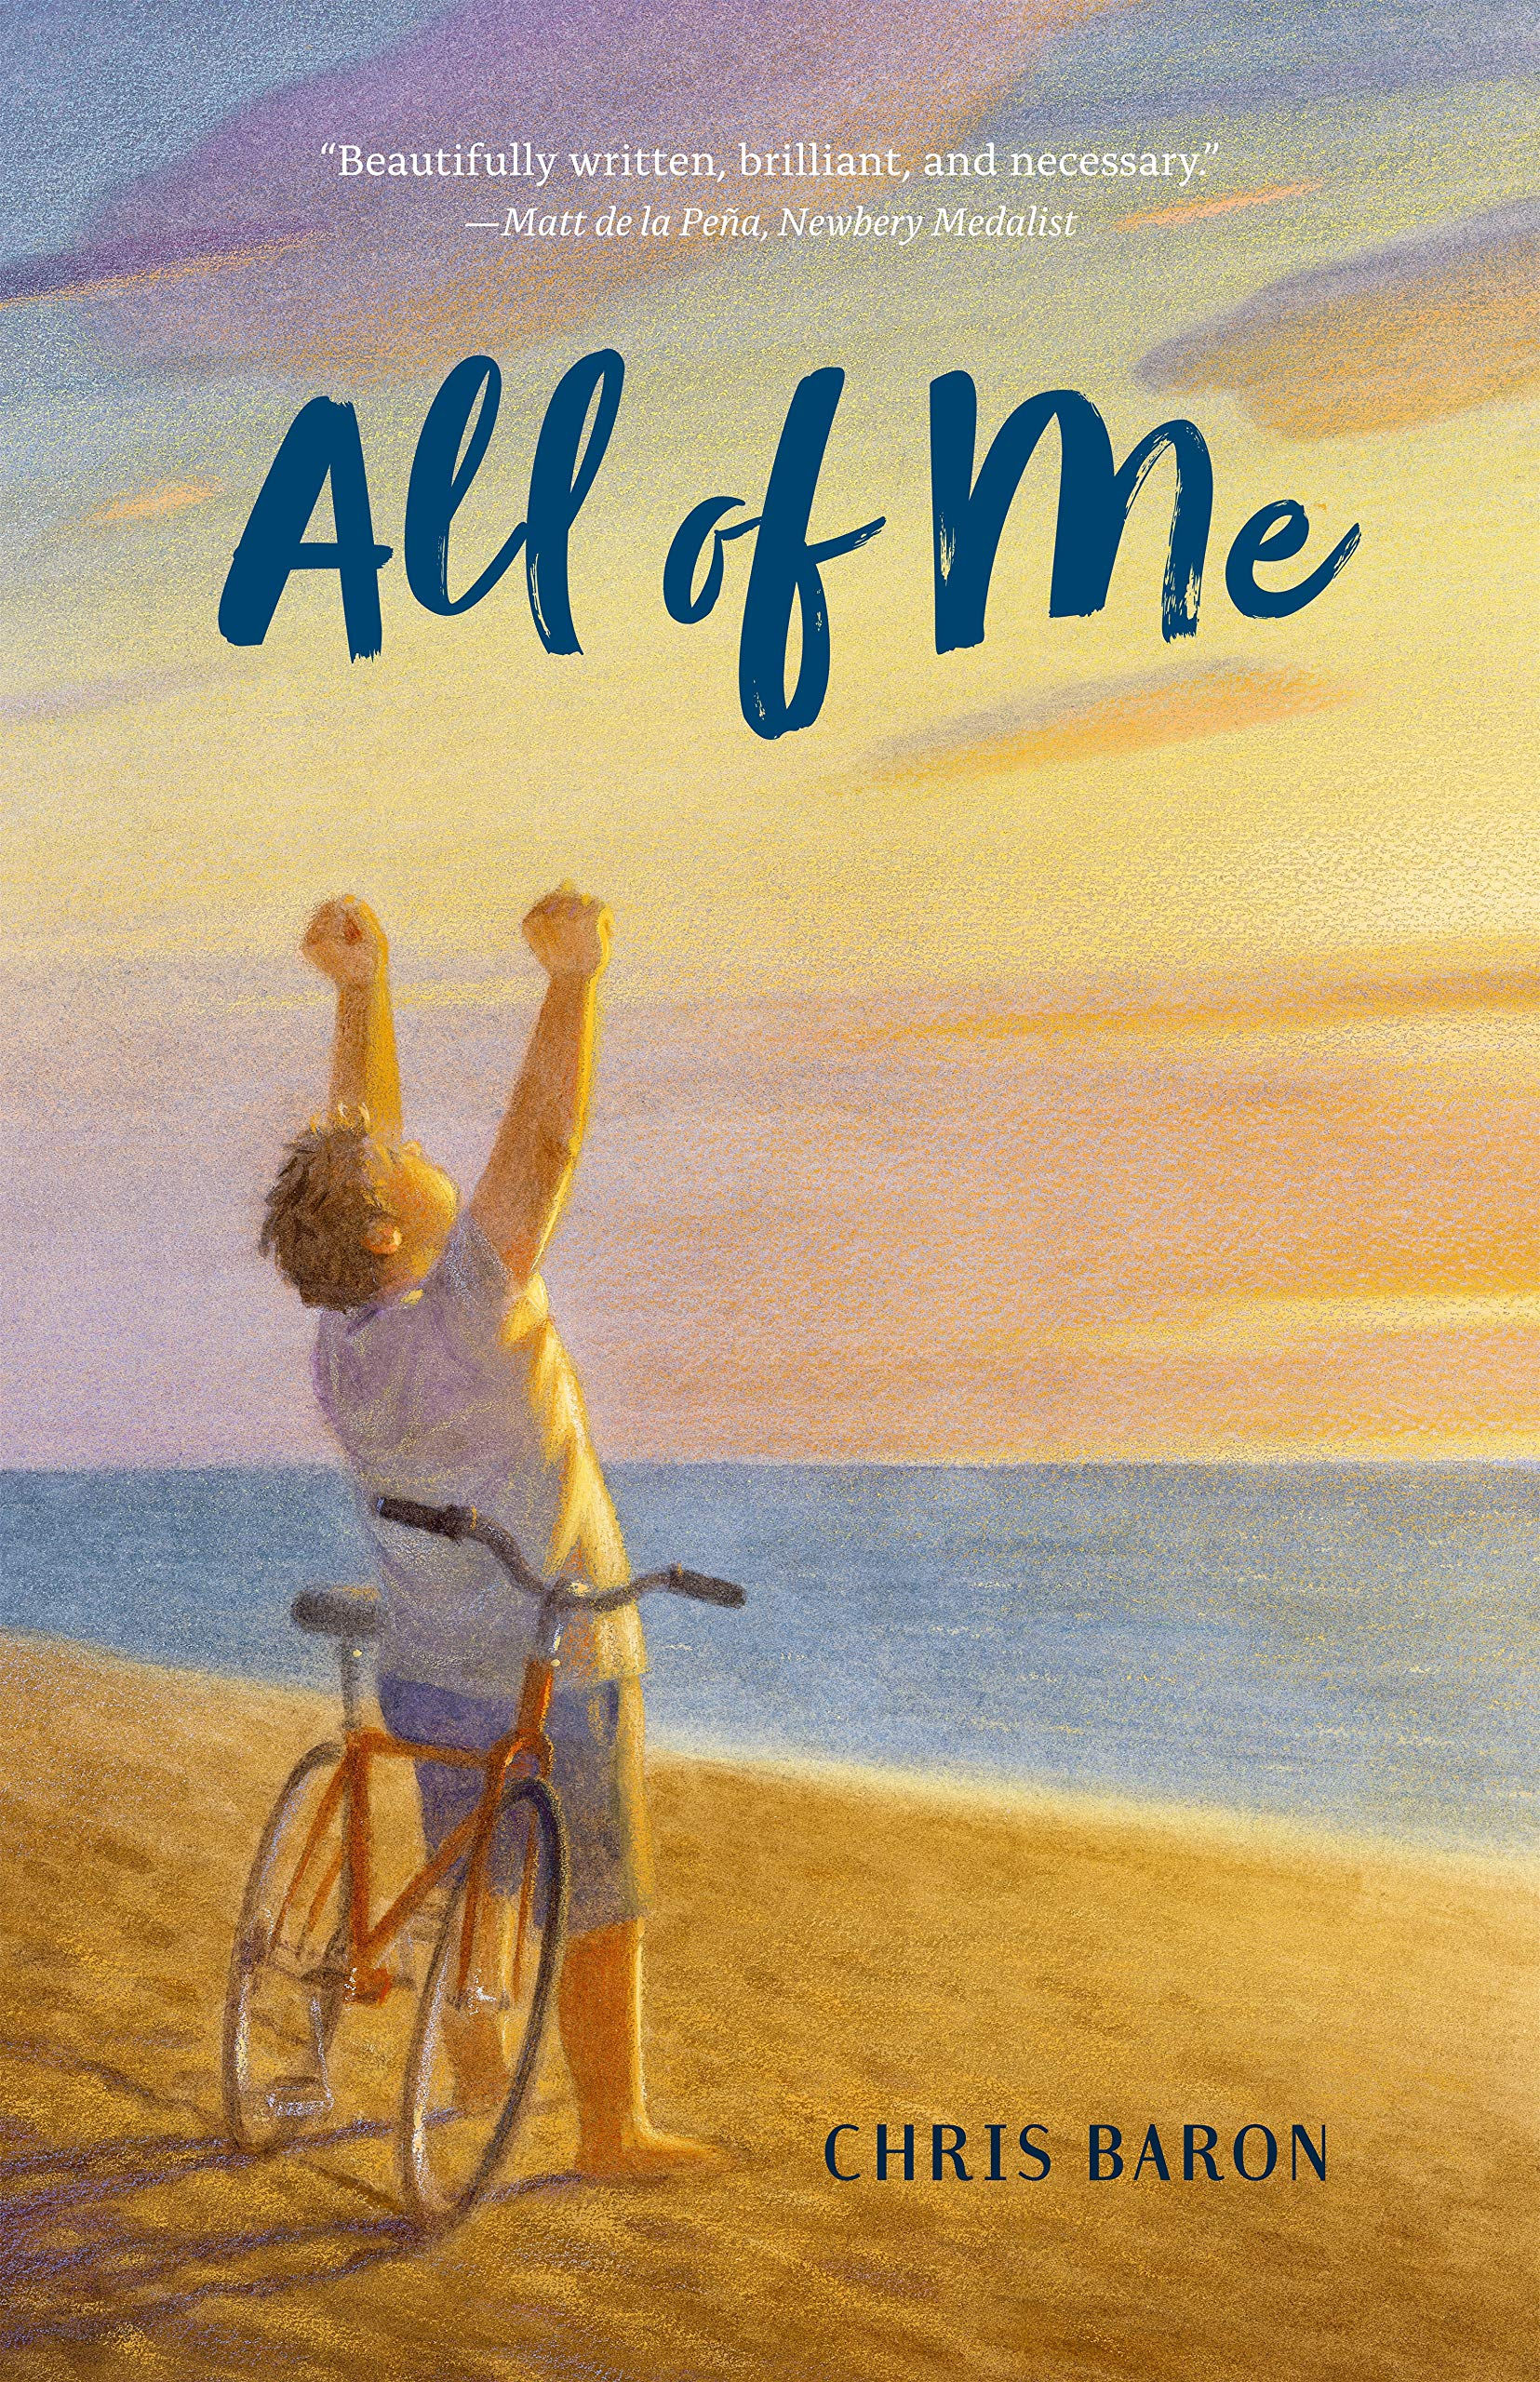 Amazon.com: All of Me (9781250305985): Baron, Chris: Books